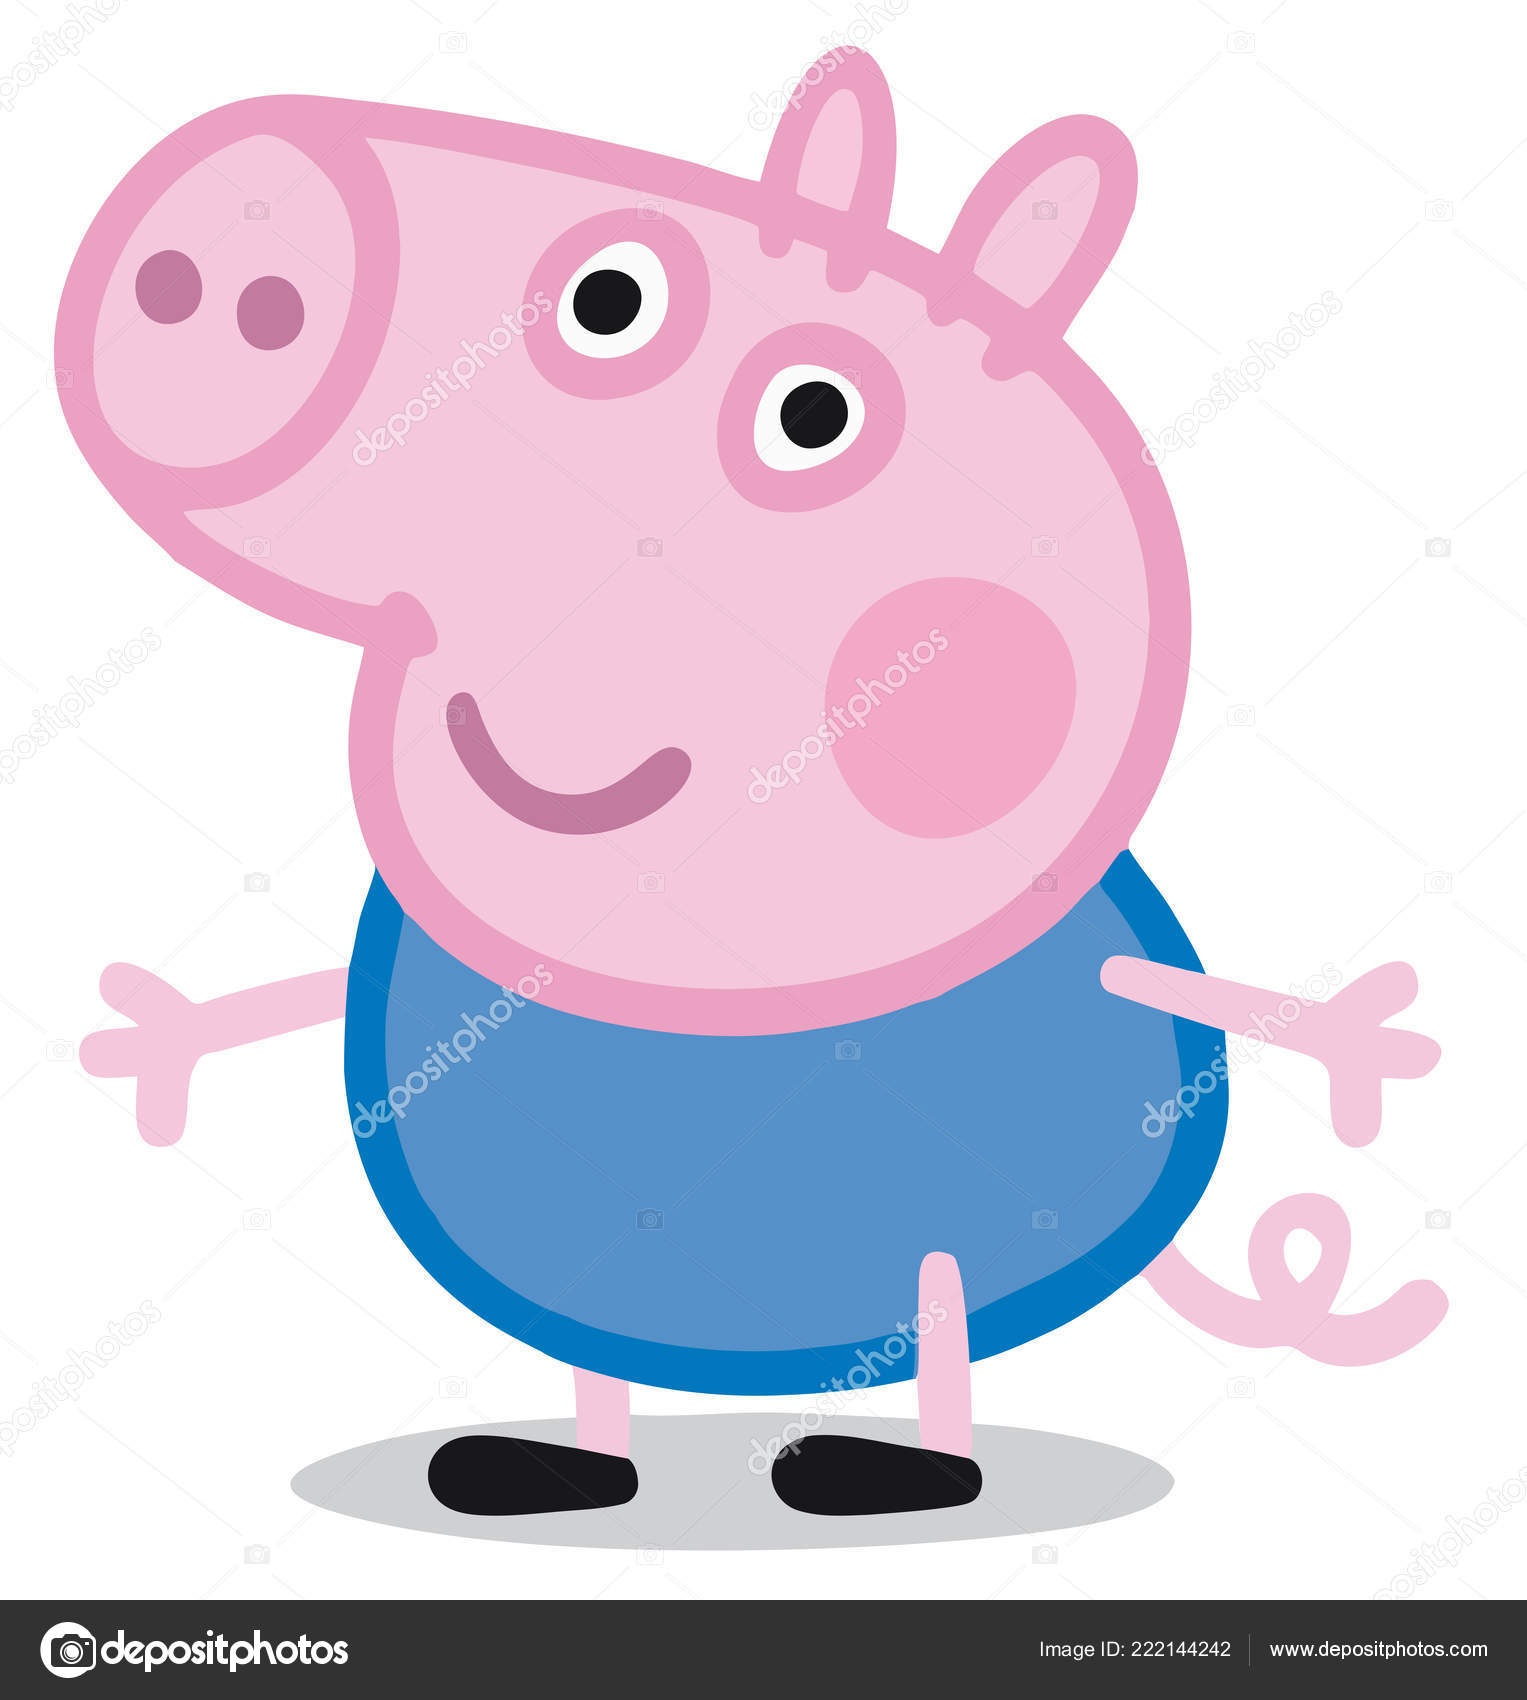 Peppa Pig Kids Cartoon Character George Illustration Stock